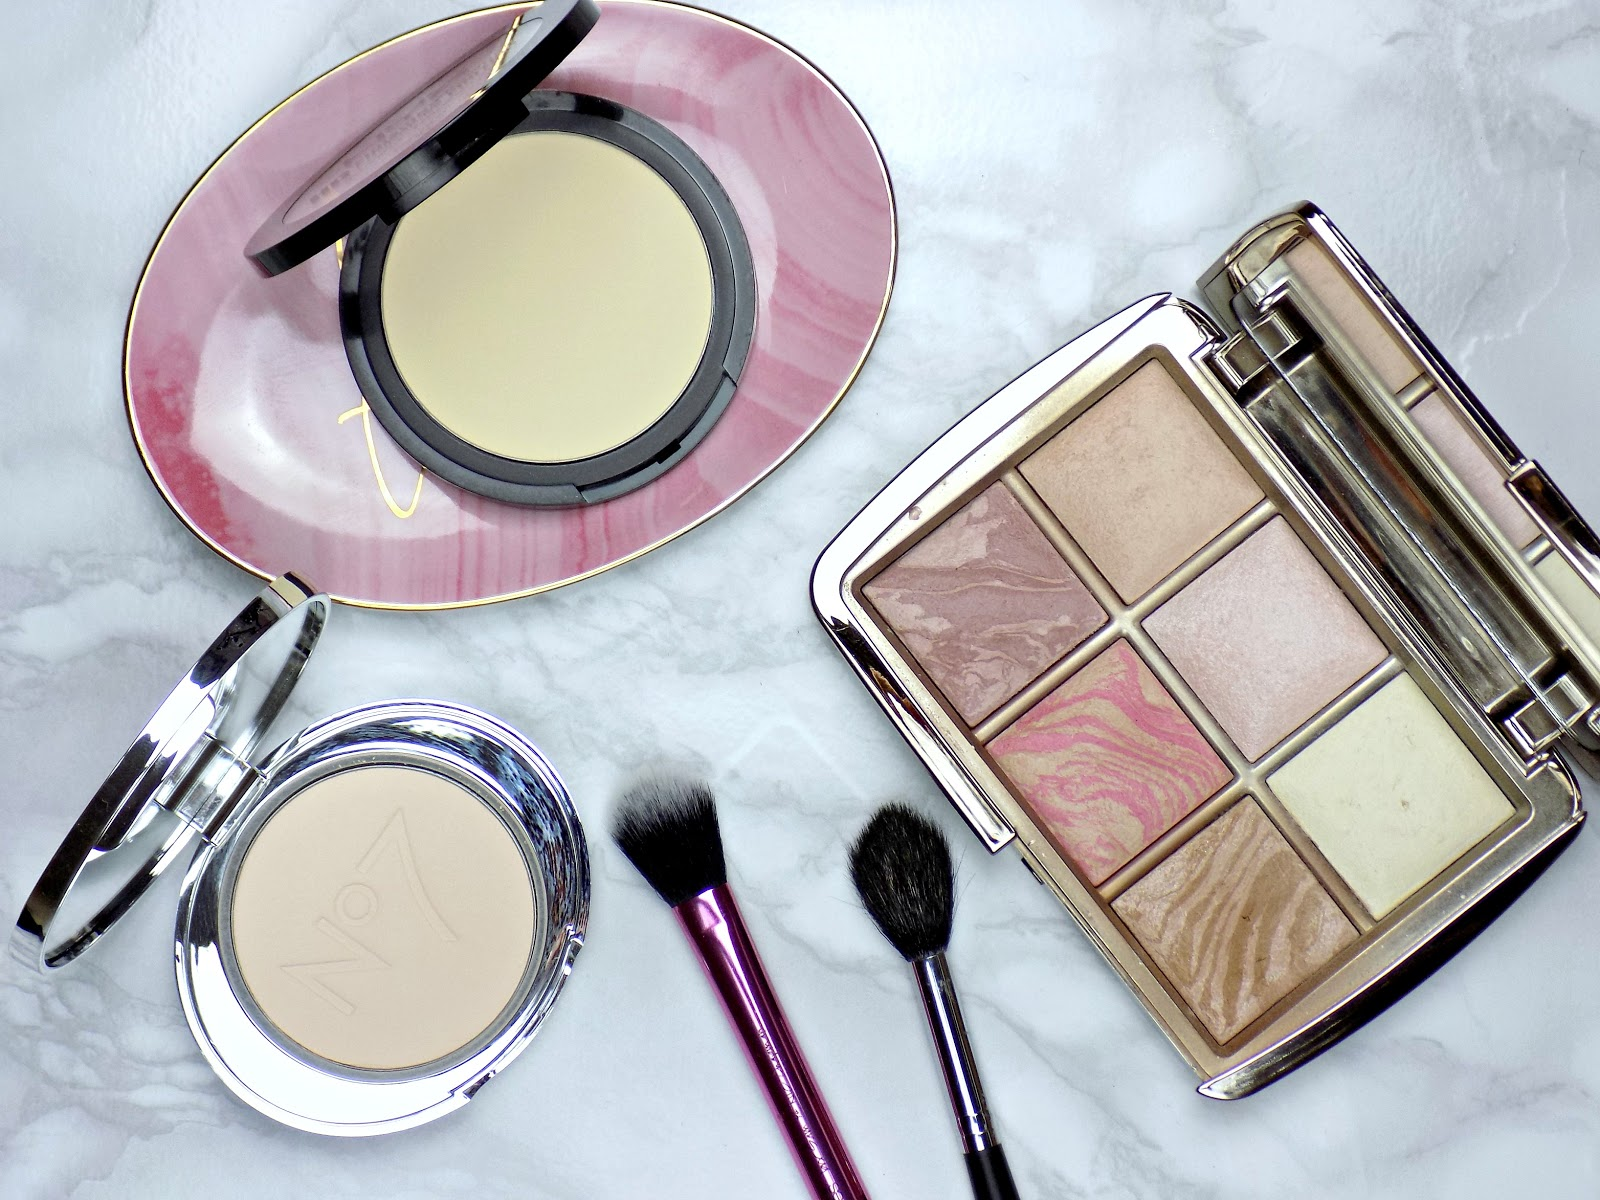 best under eye setting powders, No7 Airbrush Away Translucent Powder, NYX HD Finishing Powder in shade Banana, Hourglass Ambient Lighting Powder in shade Diffused Light,